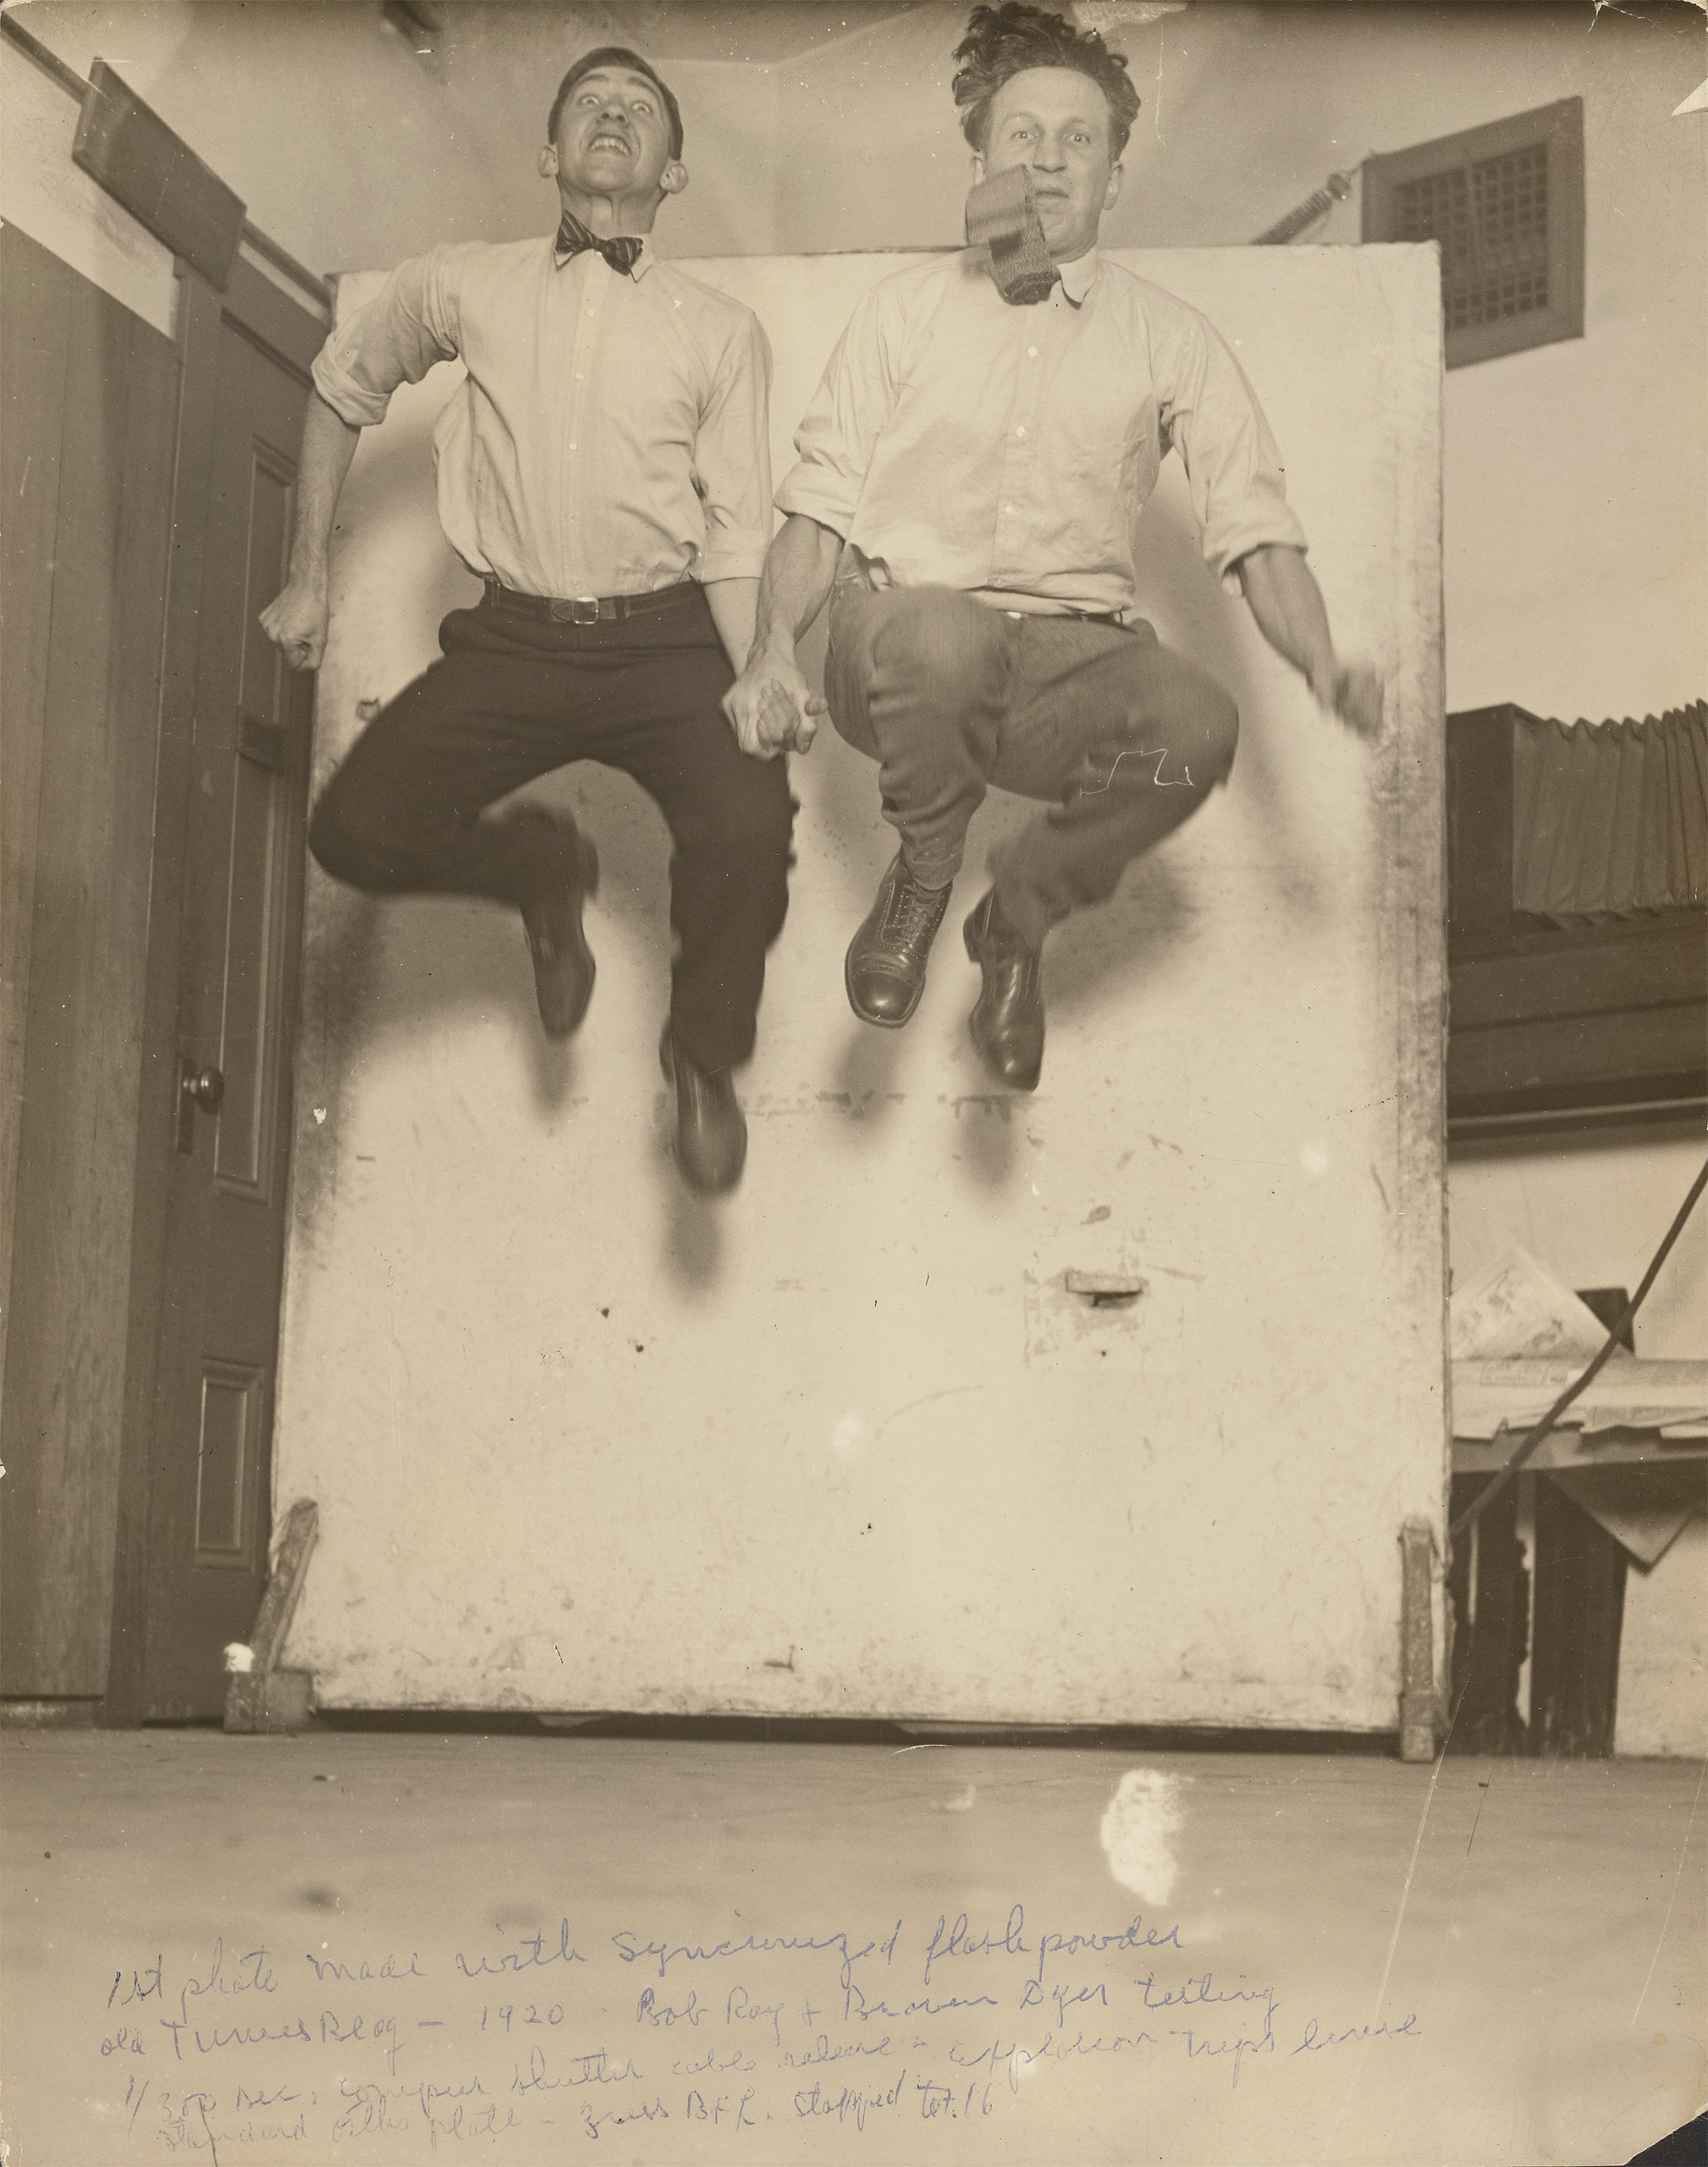 First Synchronized Powder Flash, 1920The Watson Family Photo Collection / The J. Paul Getty Museum, Los Angeles